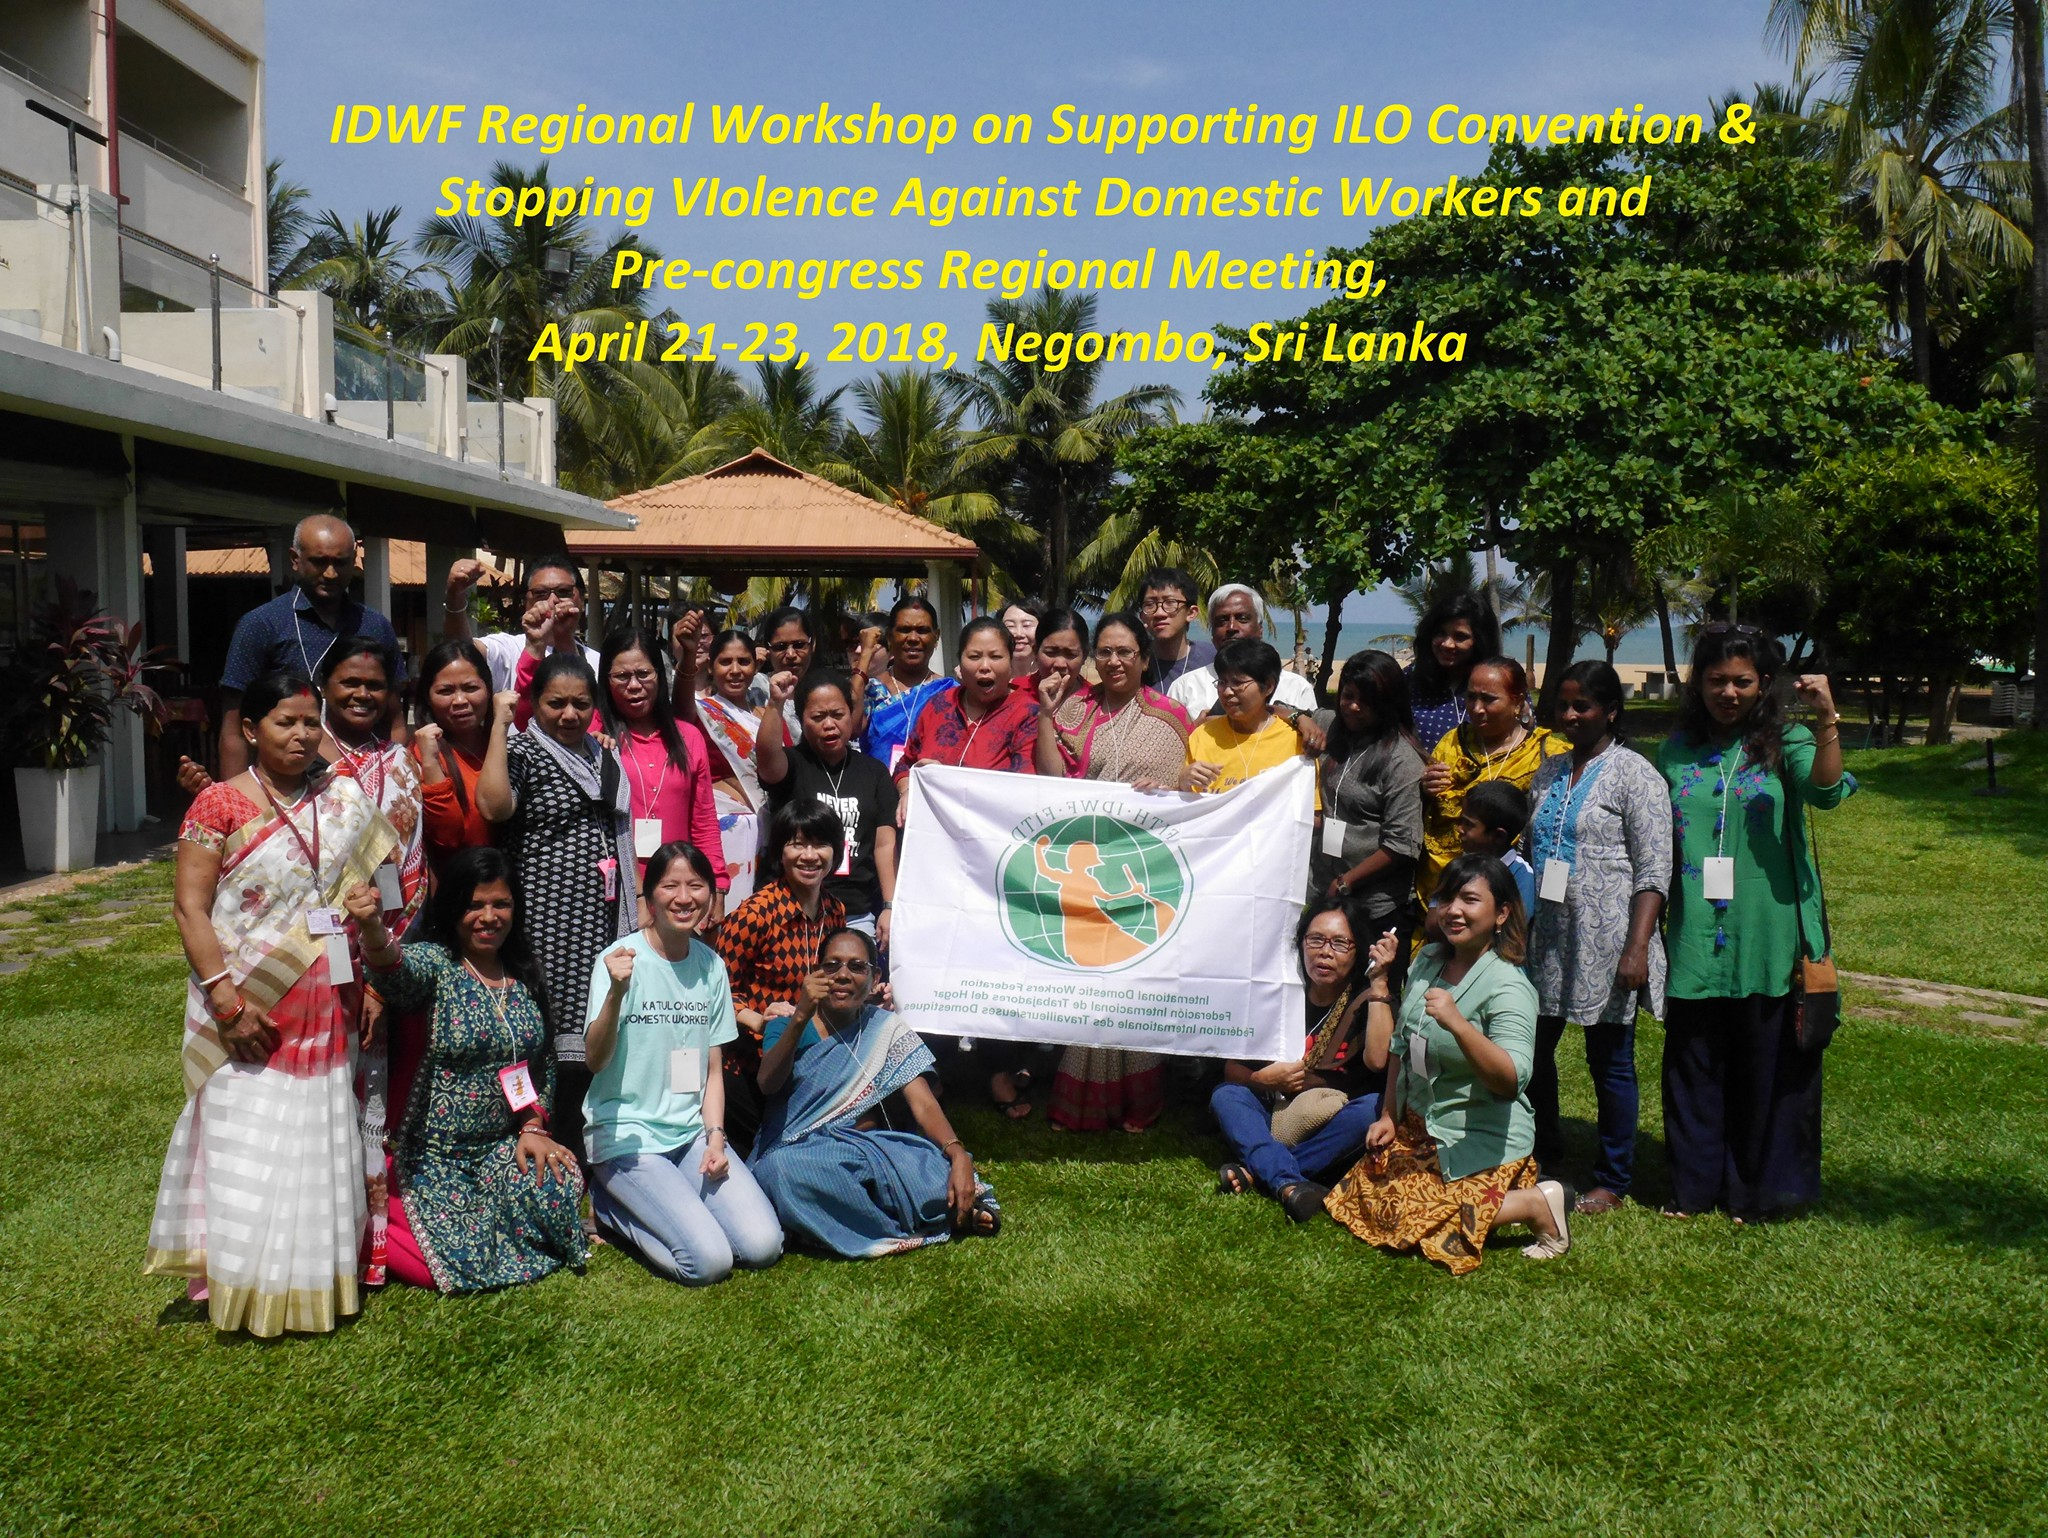 Asia: IDWF Pre-congress Regional Meeting